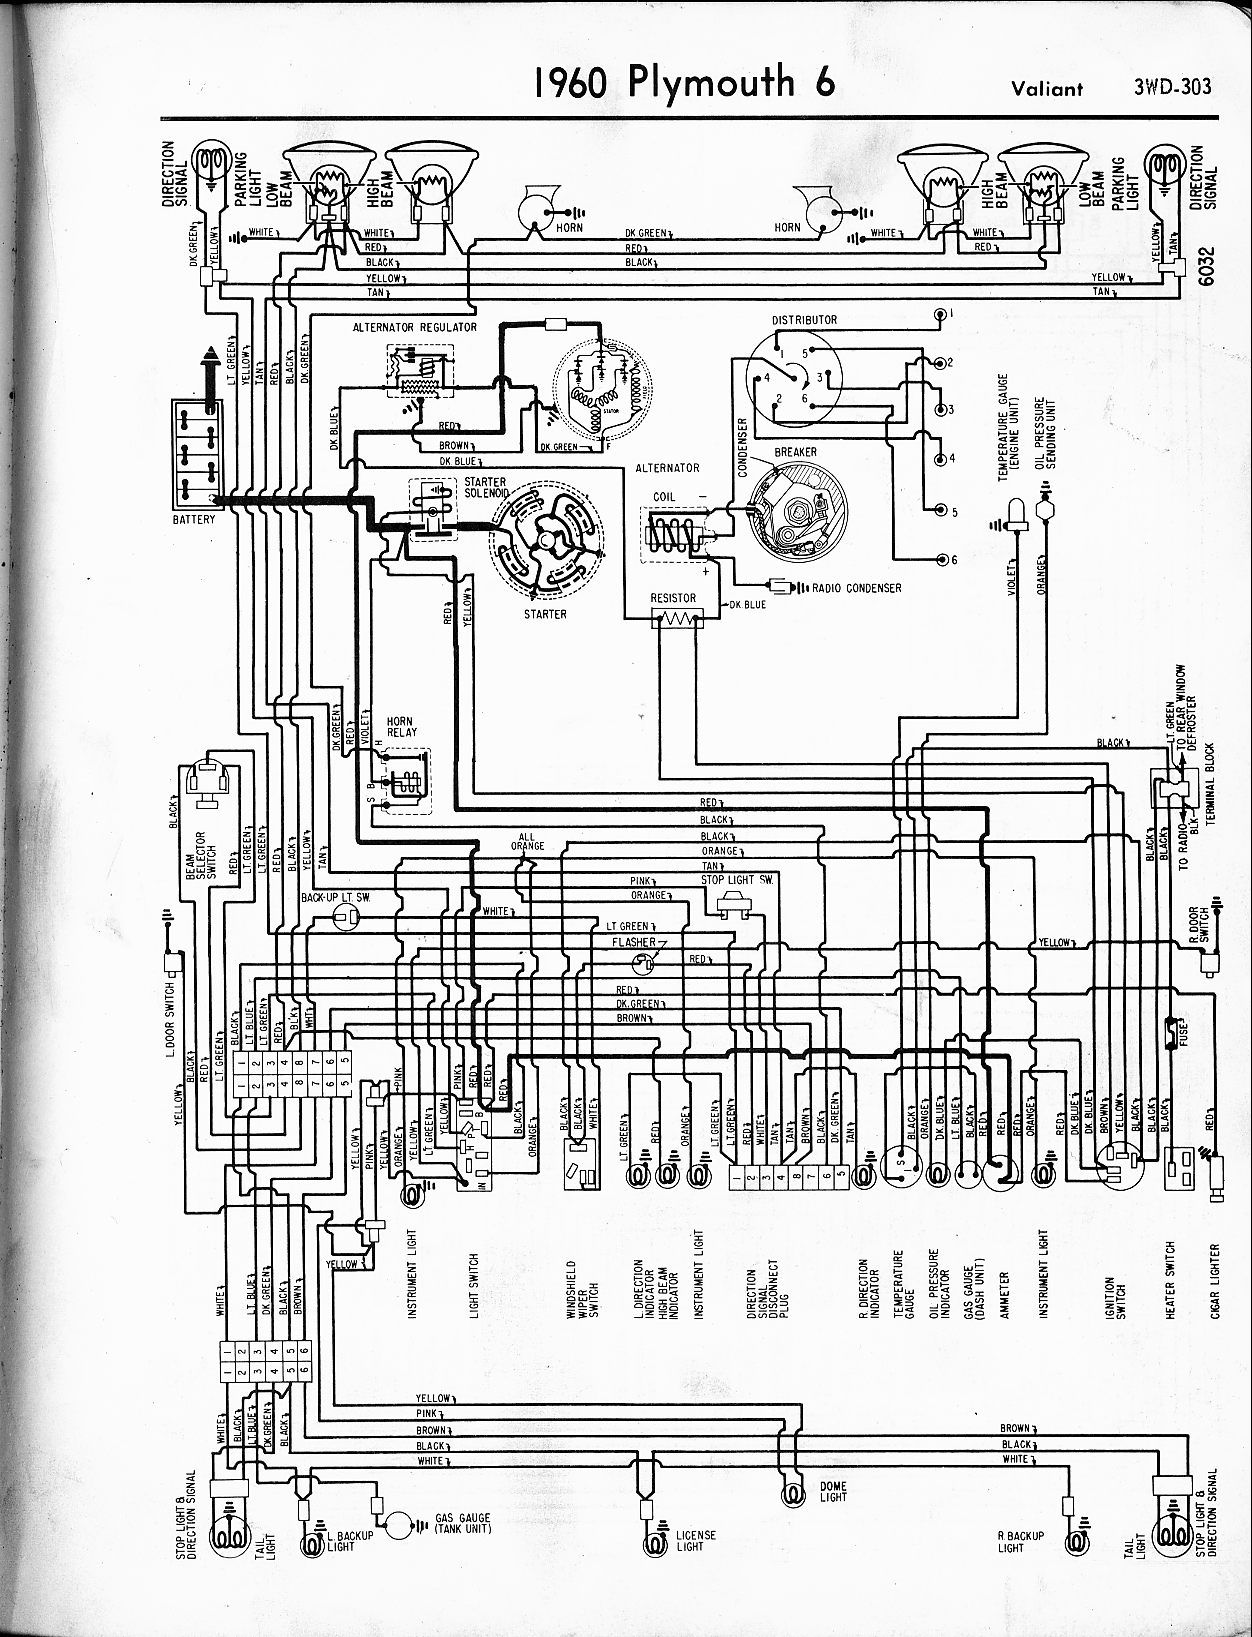 Fuel Gauge Wiring Diagram Plymouth Archive Of Automotive Wire And Technical Data In A Pdf File The Electrical Books U2022 Rh Mattersoflifecoaching Co